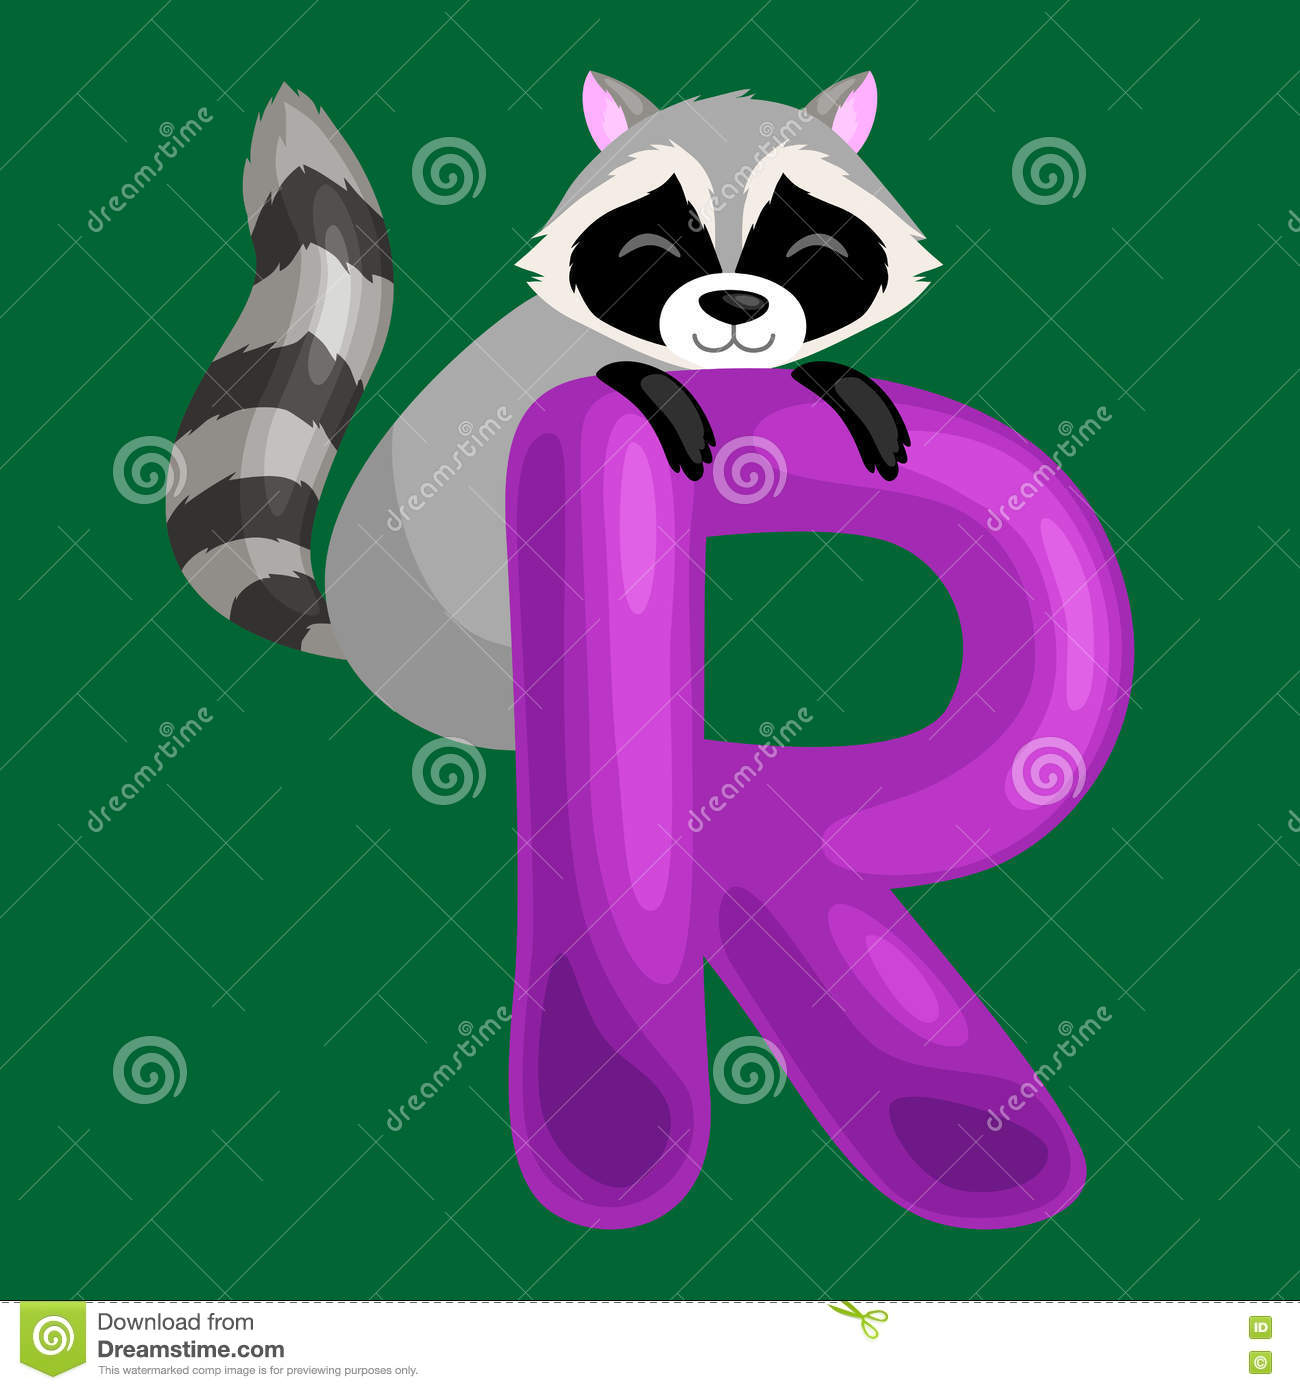 Letter R With Animal Raccoon For Kids Abc Education In Preschool Stock Vector